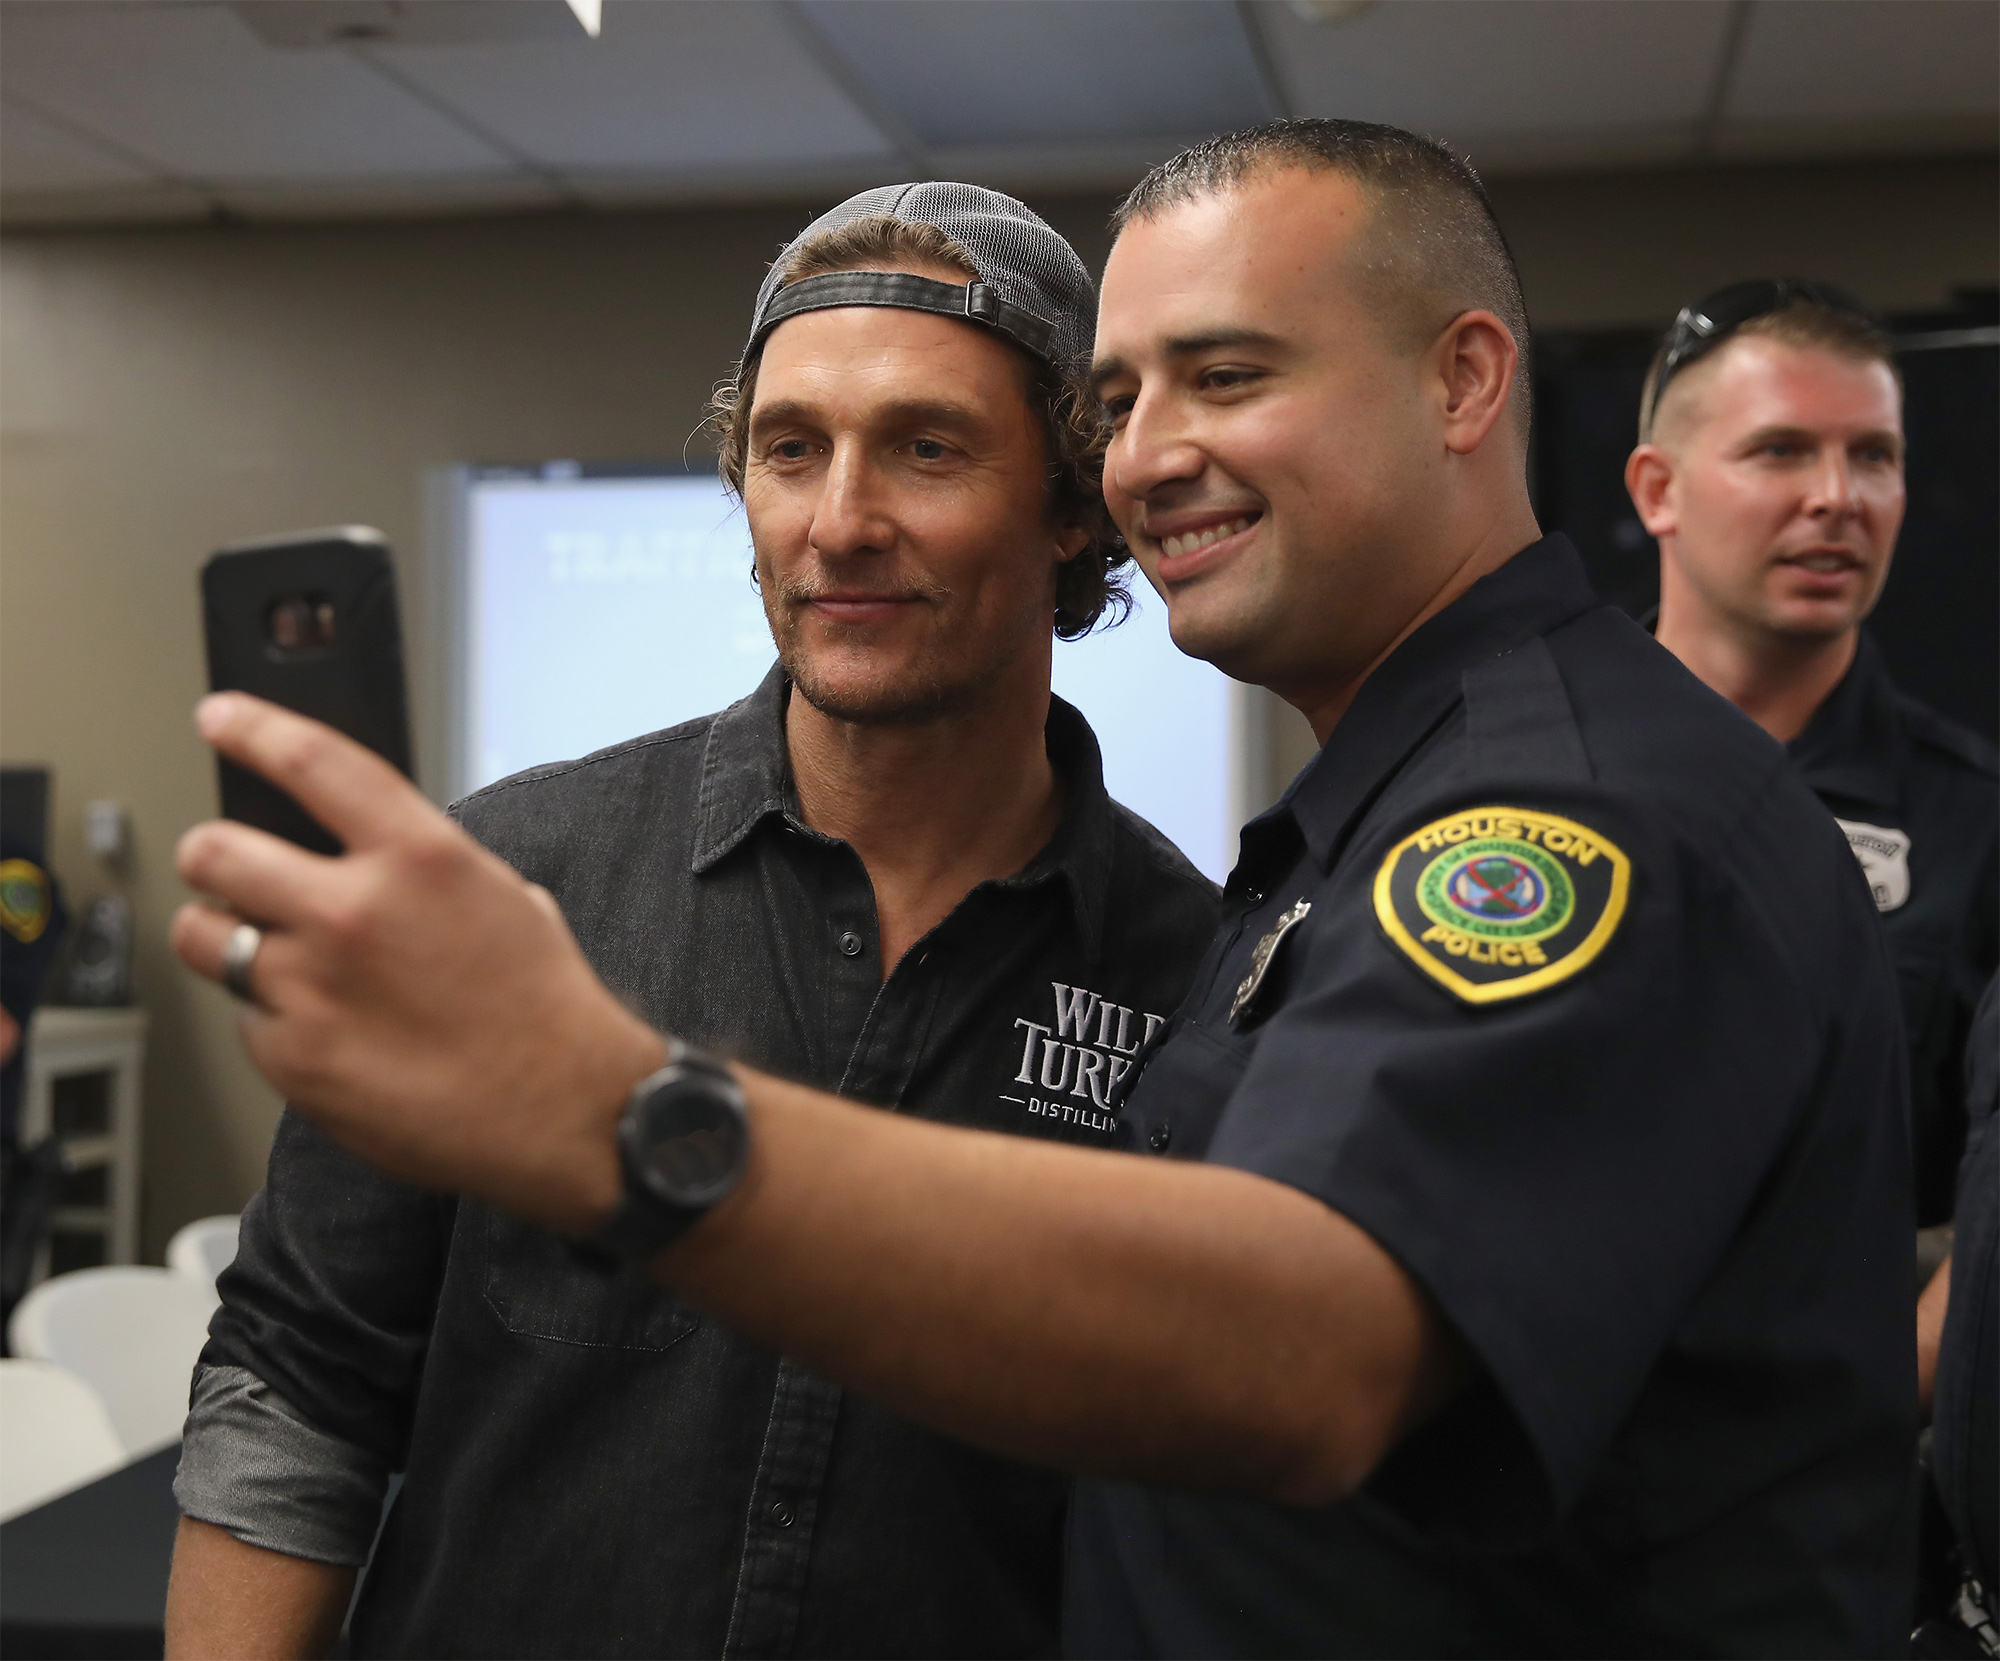 Matthew McConaughey Surprises Hurricane Harvey First Responders in Houston to Give Thanks